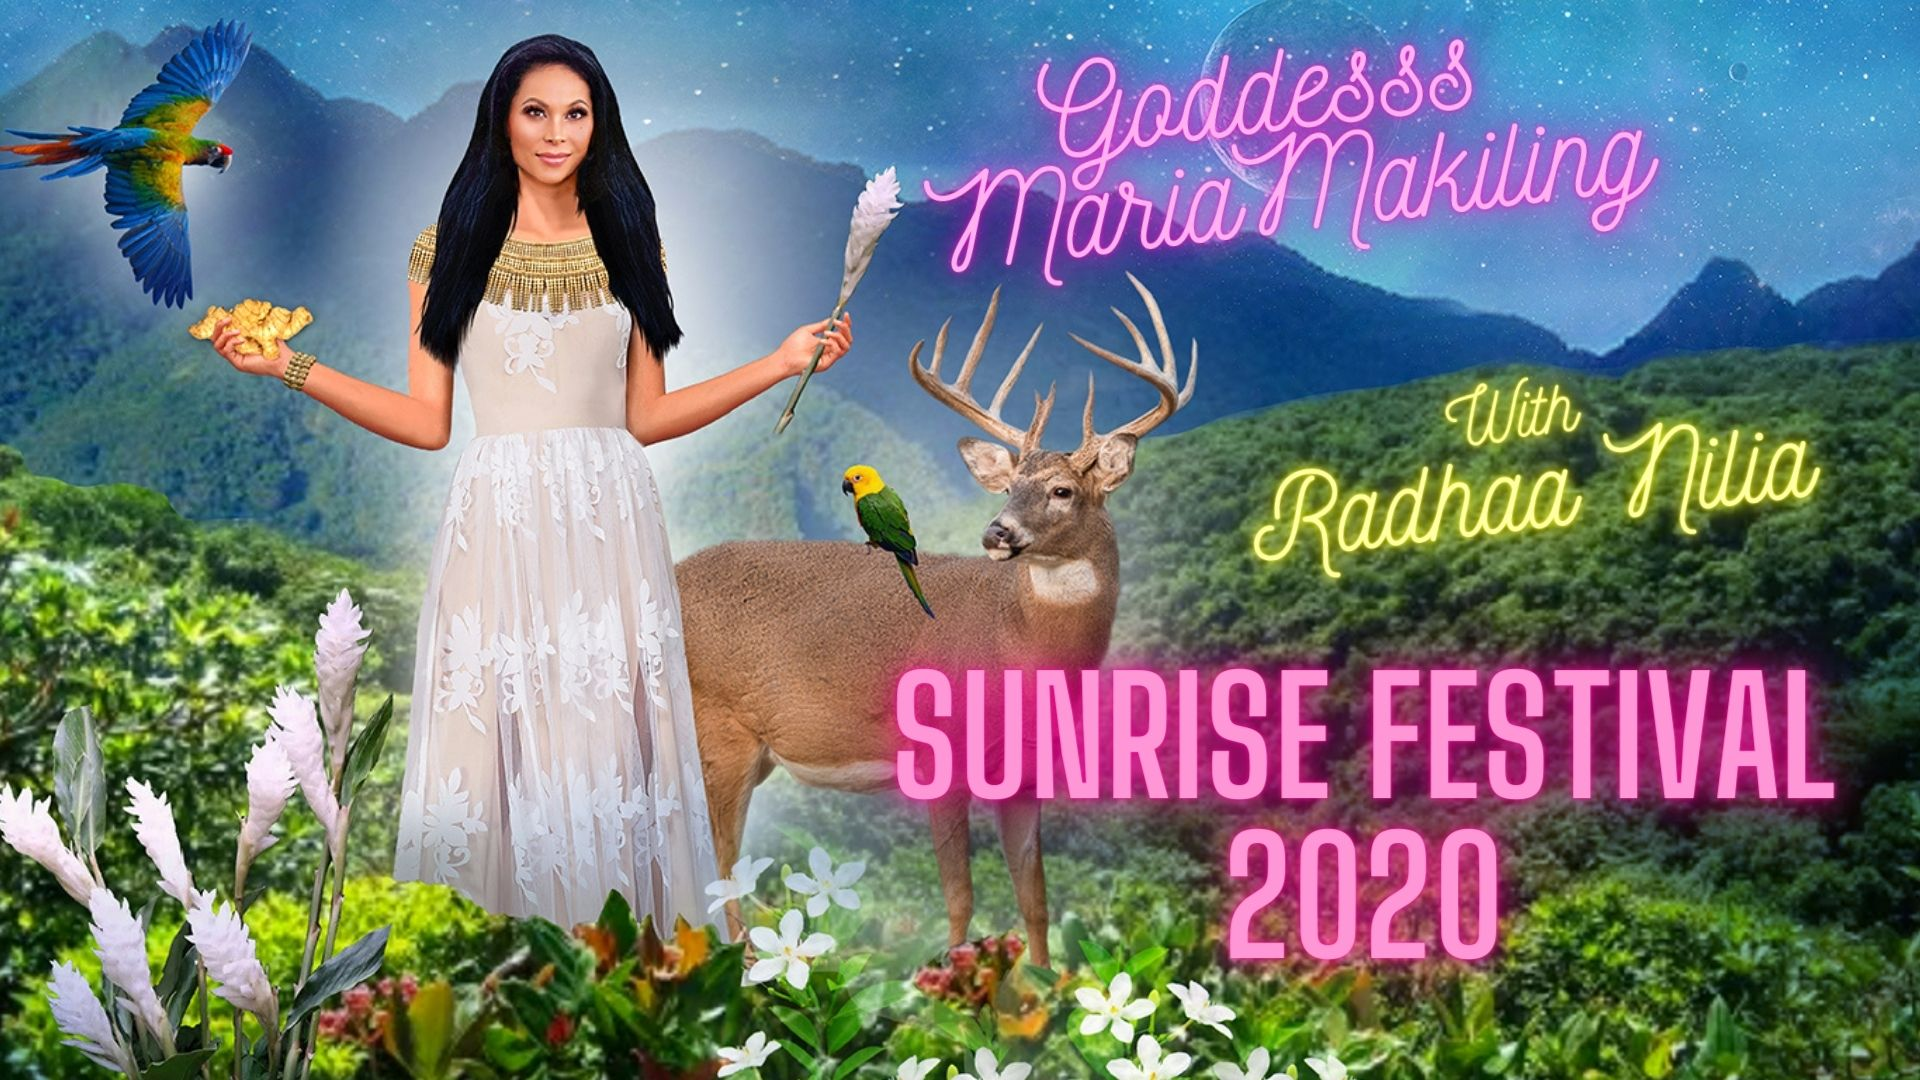 Actor Raymond Bagatsing and Radhaa Nilia Contribute to the Maharlikan Sunrise Festival amidst Covid-19 Lockdown